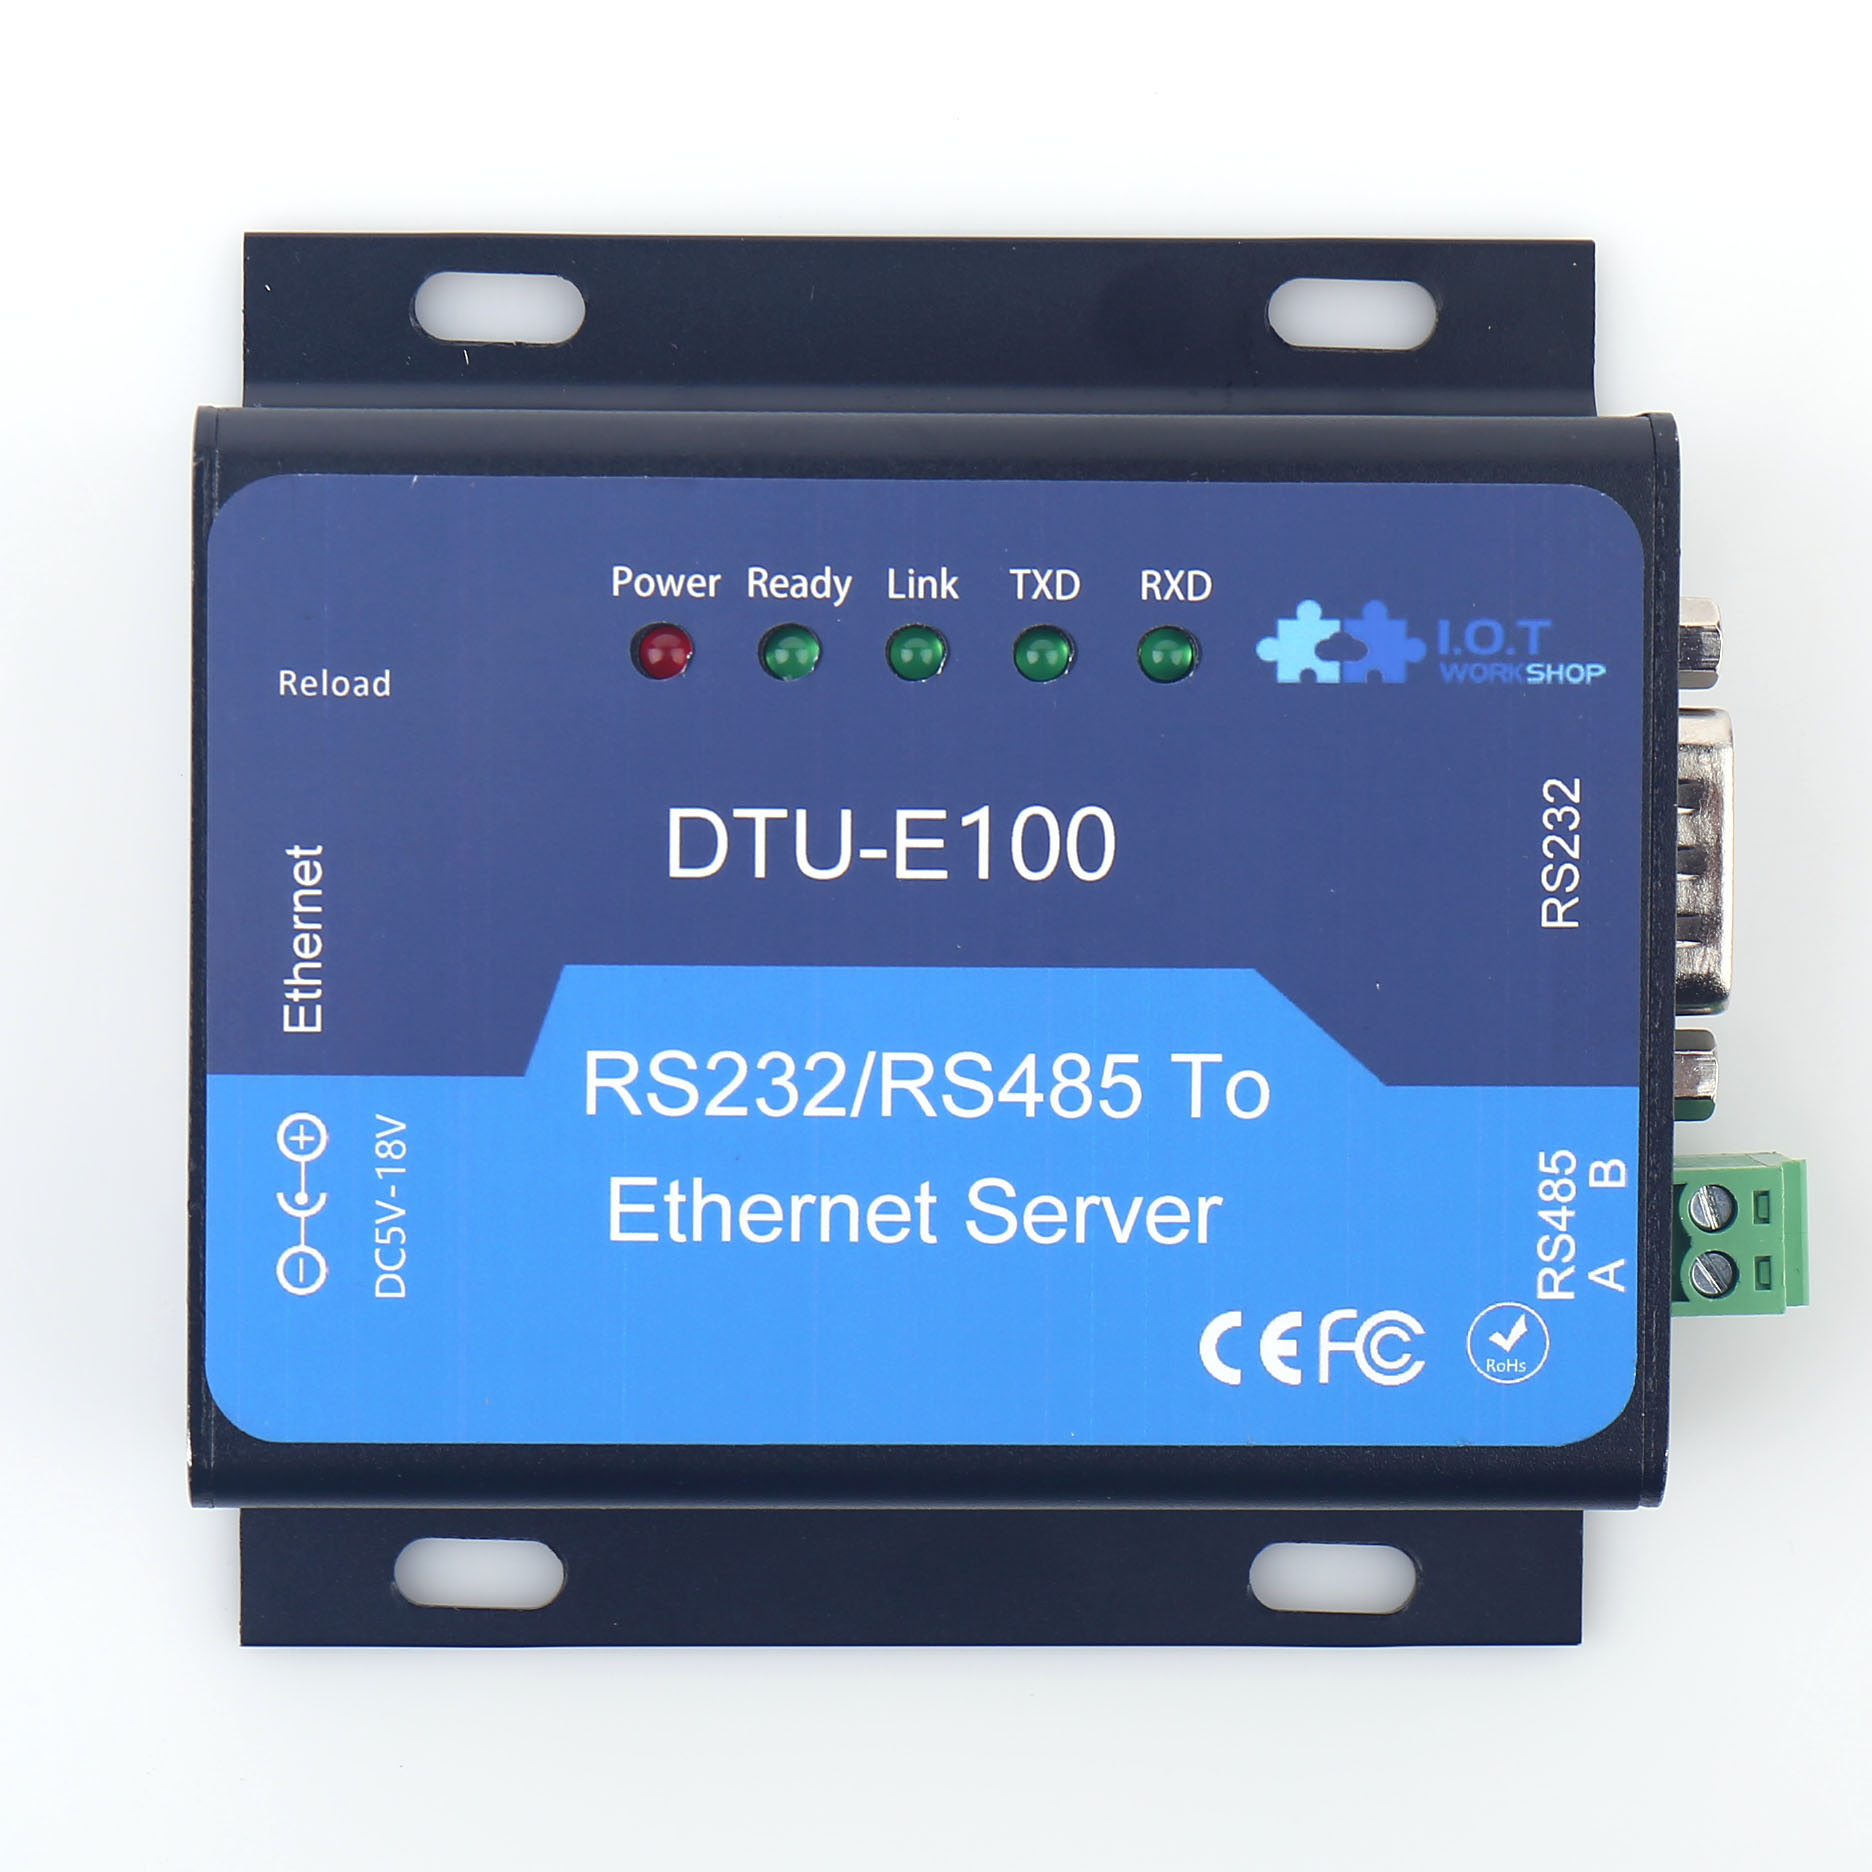 DTU Rs232/RS485 go to Ethernet Server RJ45 Converter TCP/IP 10/100 Ethernet hightek hk 8116b industrial 16 ports rs485 422 to ethernet converter ethernet to serial device server